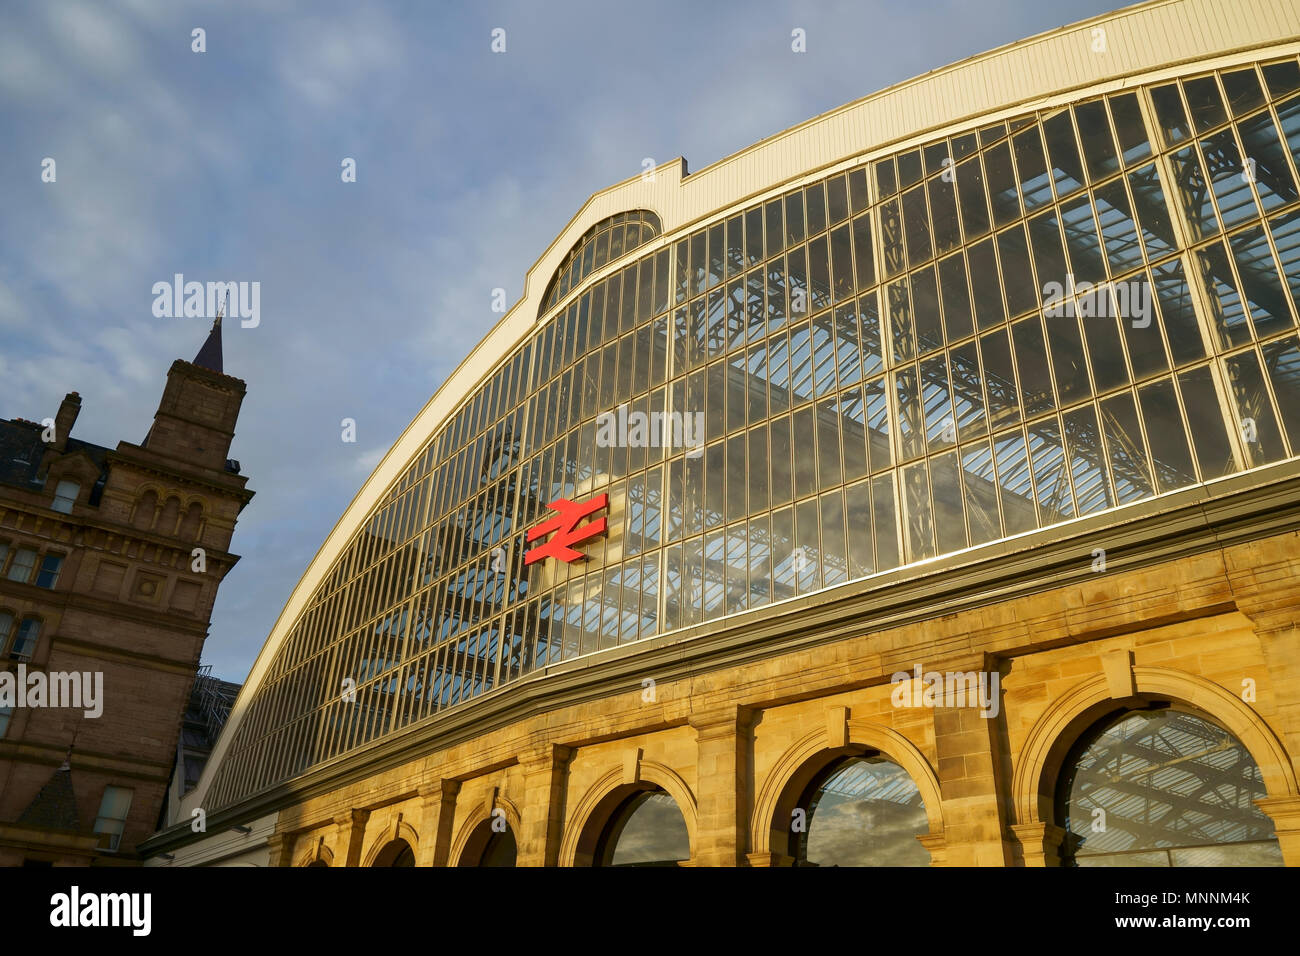 Detail of the front of Lime Street Station in Liverpool city centre UK - Stock Image